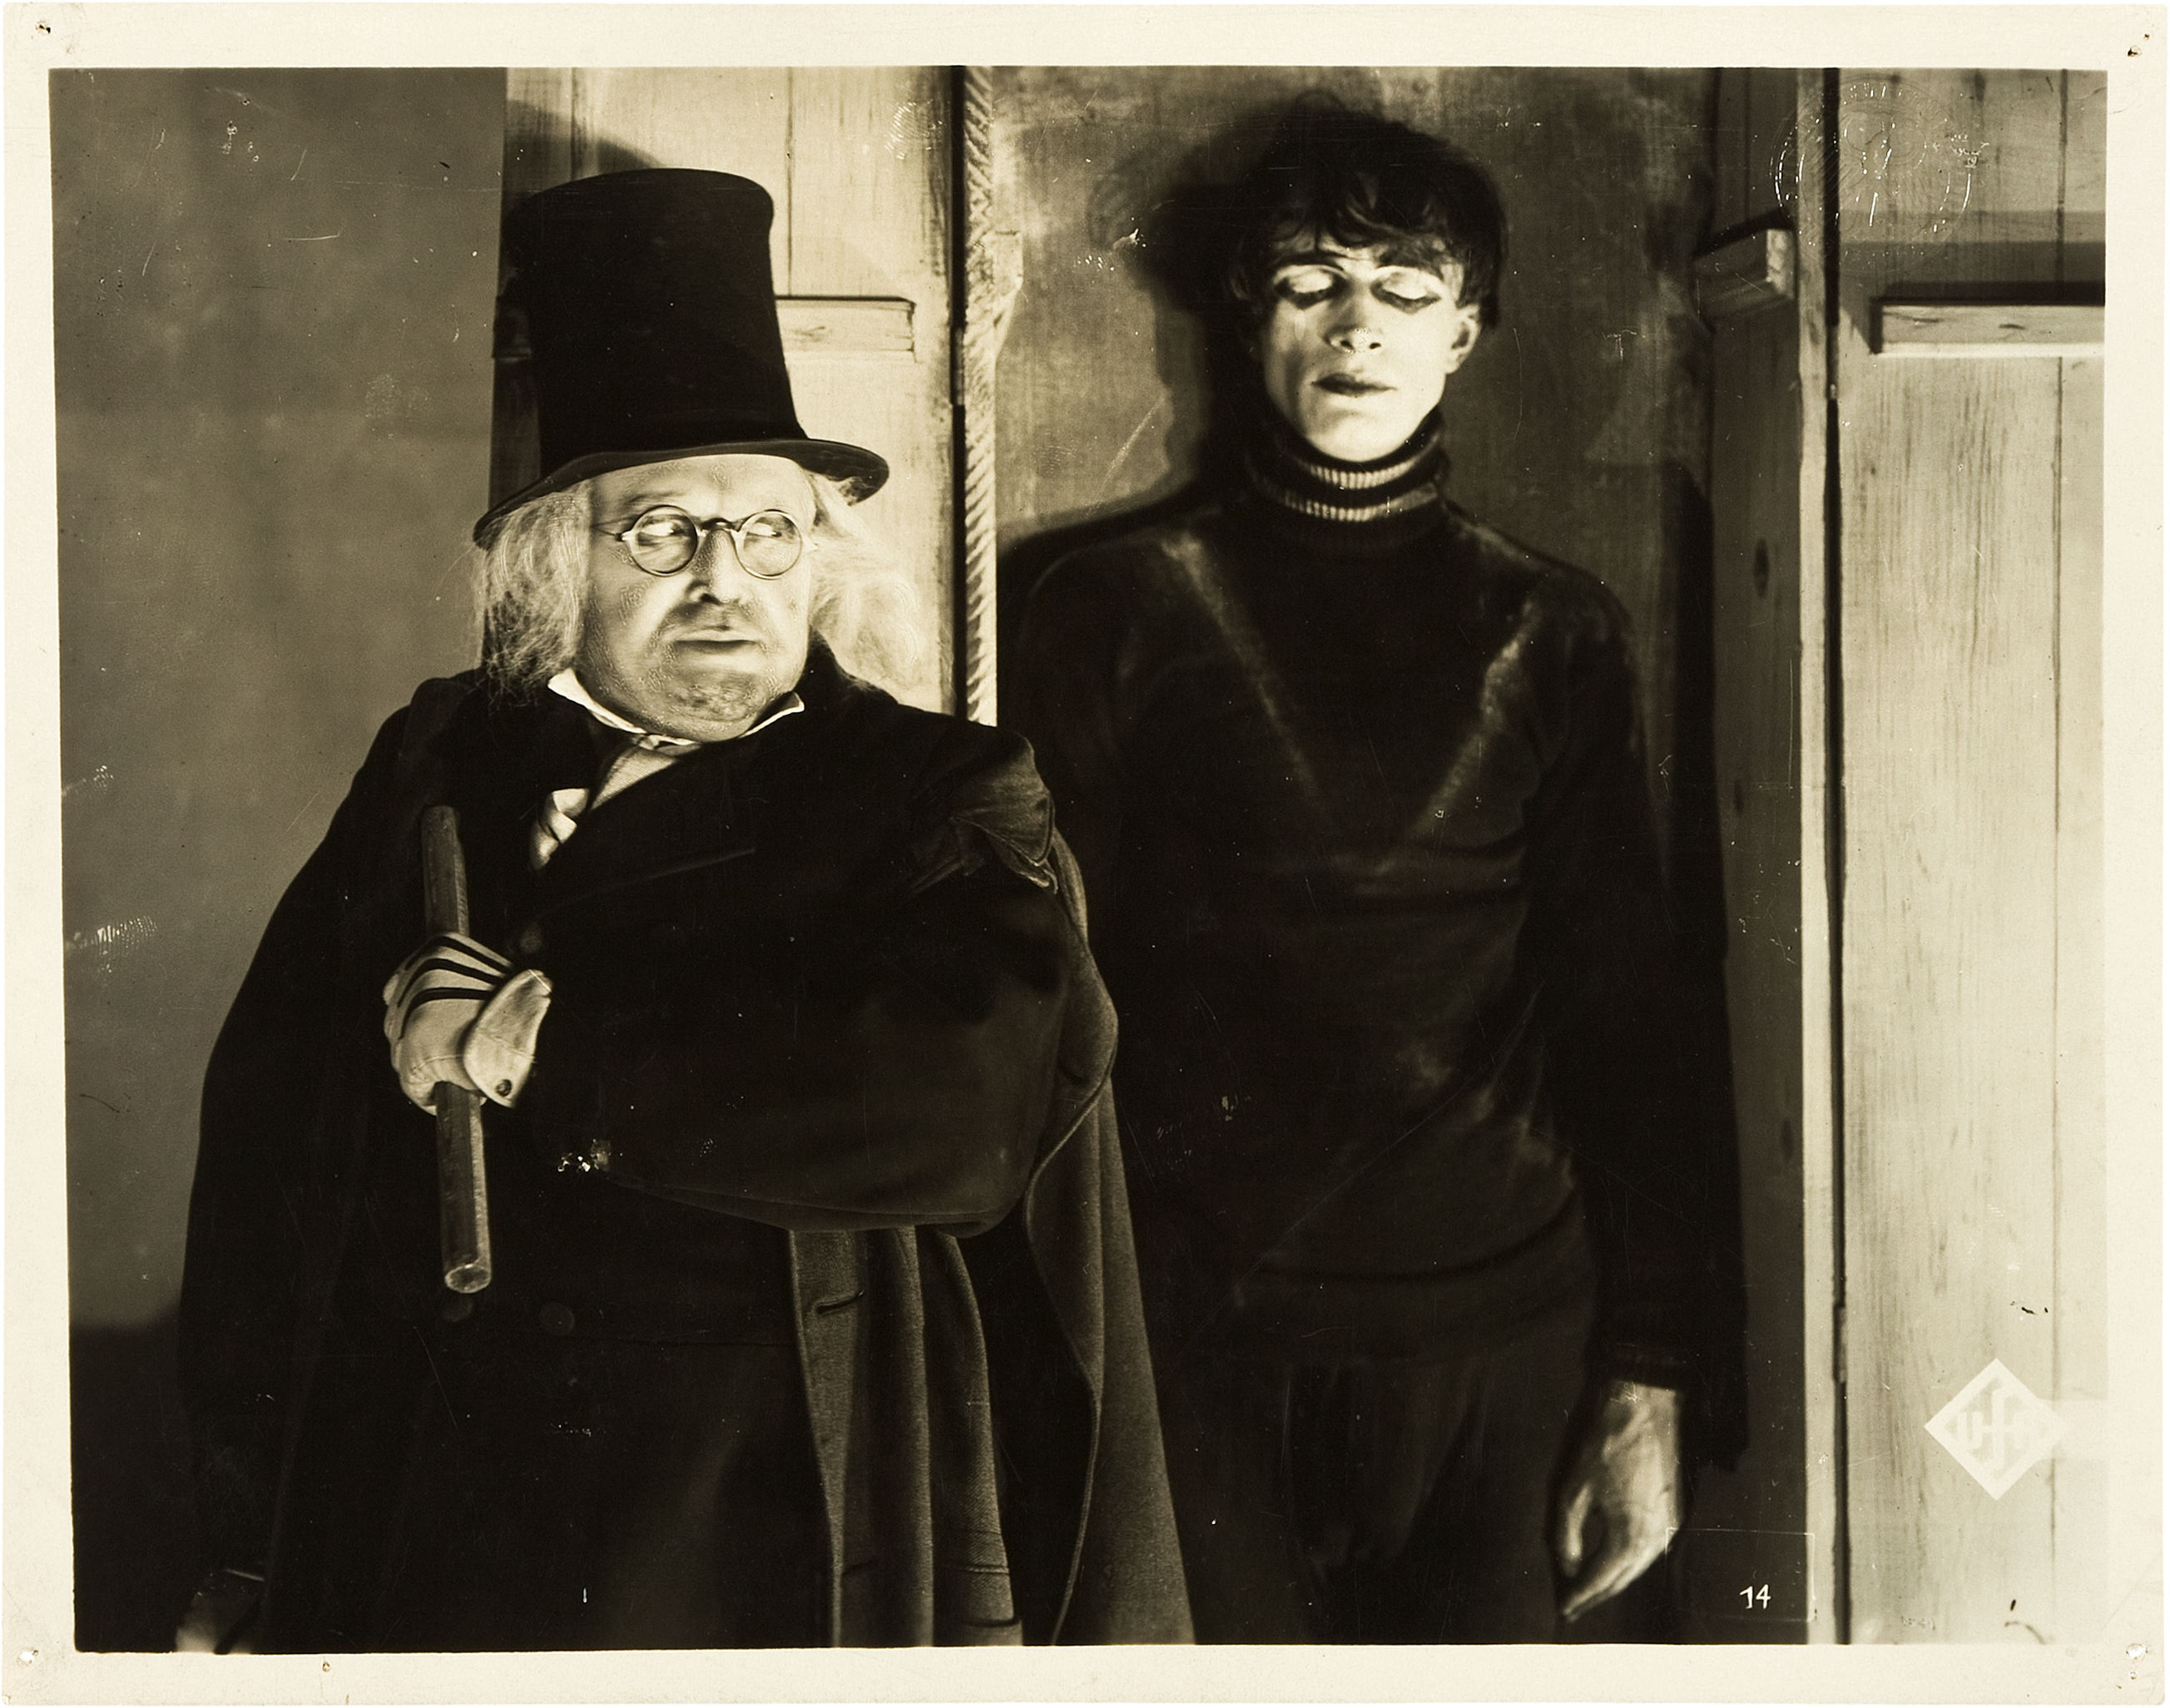 Der cabinet das dr caligari tom girard - The cabinet of dr caligari ...